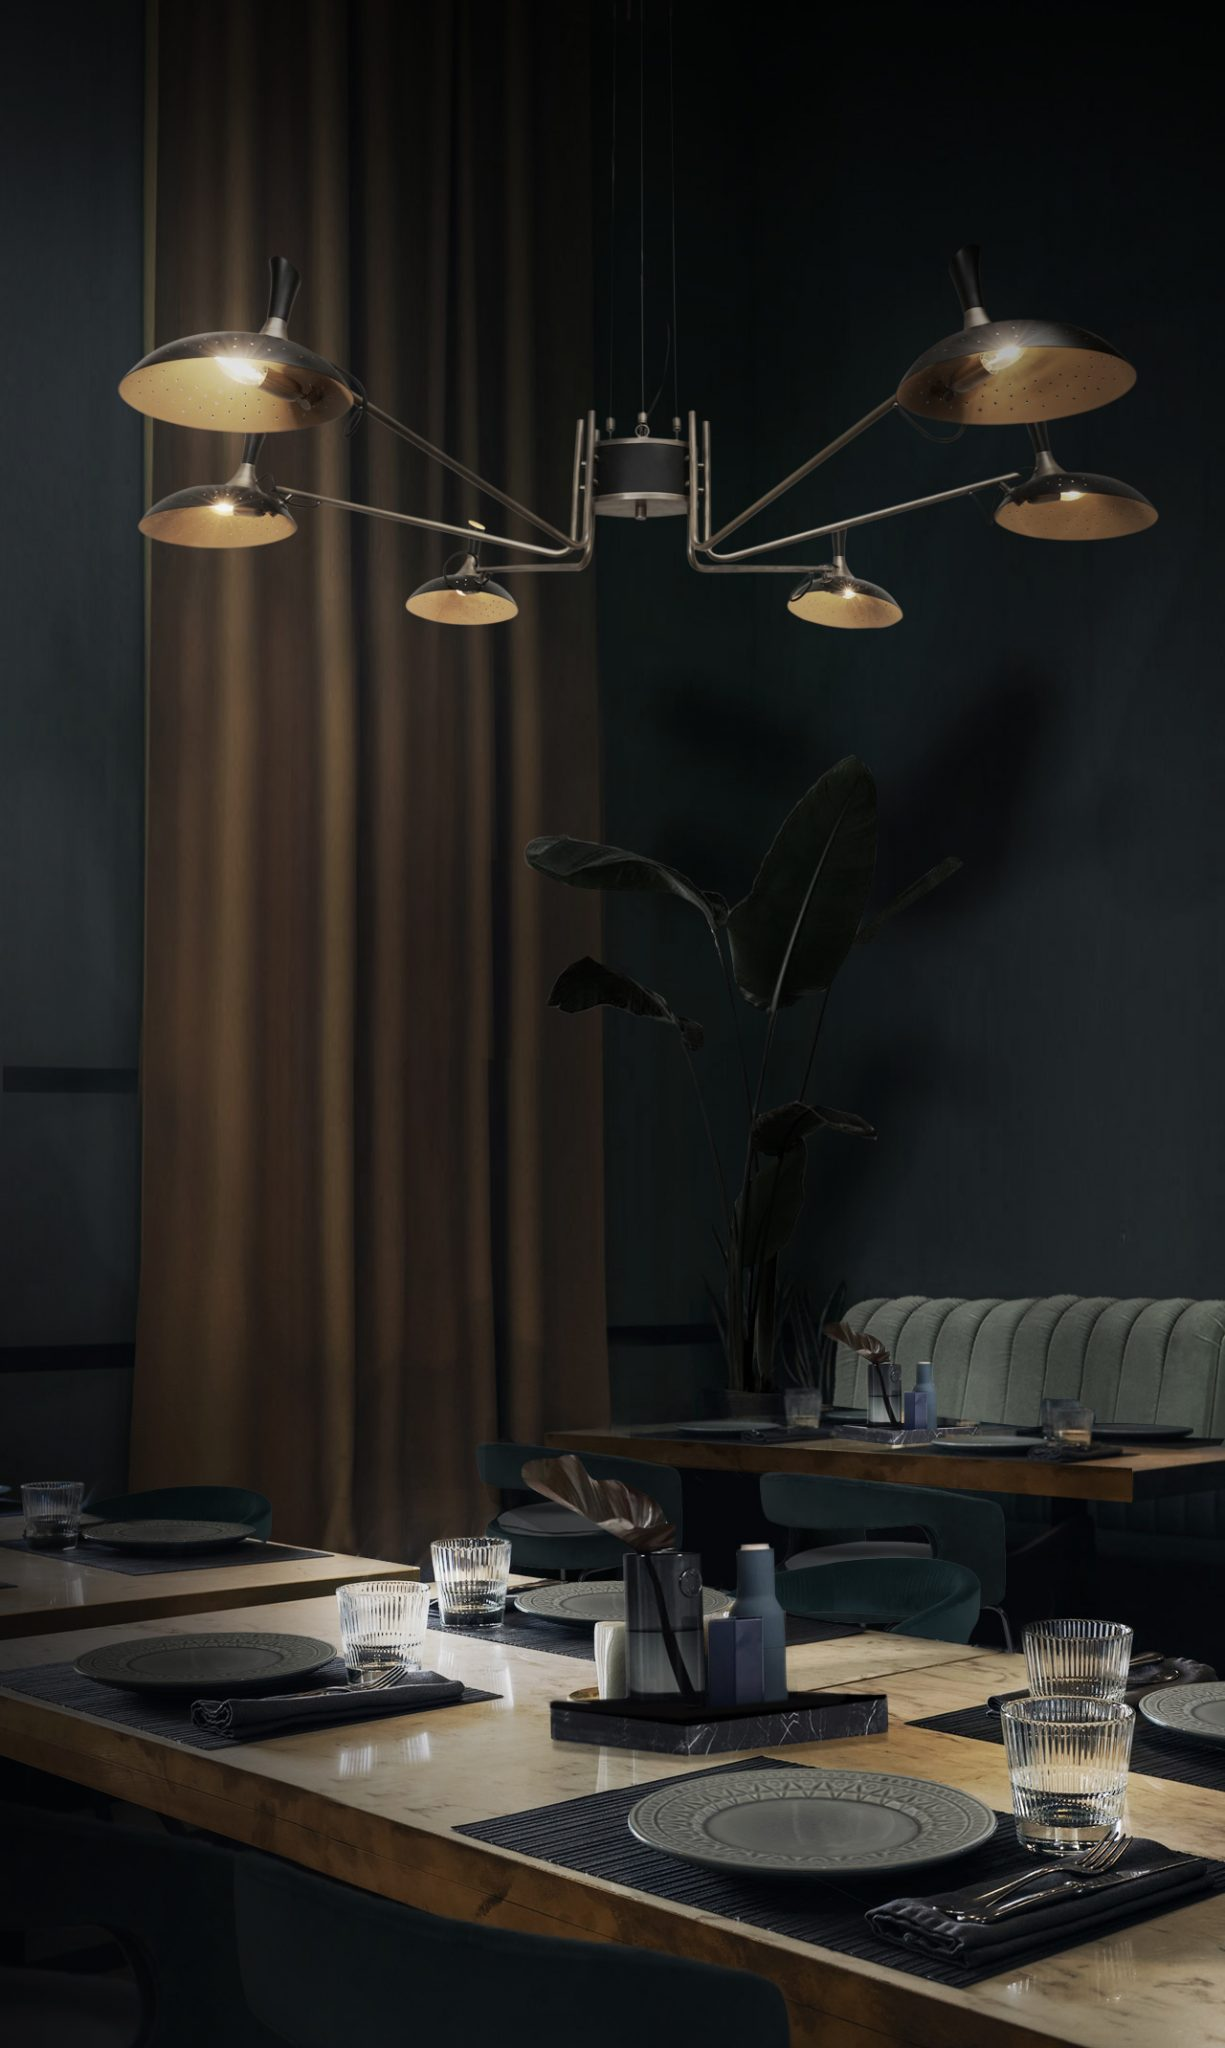 MODERN RESTAURANT LIGHTING